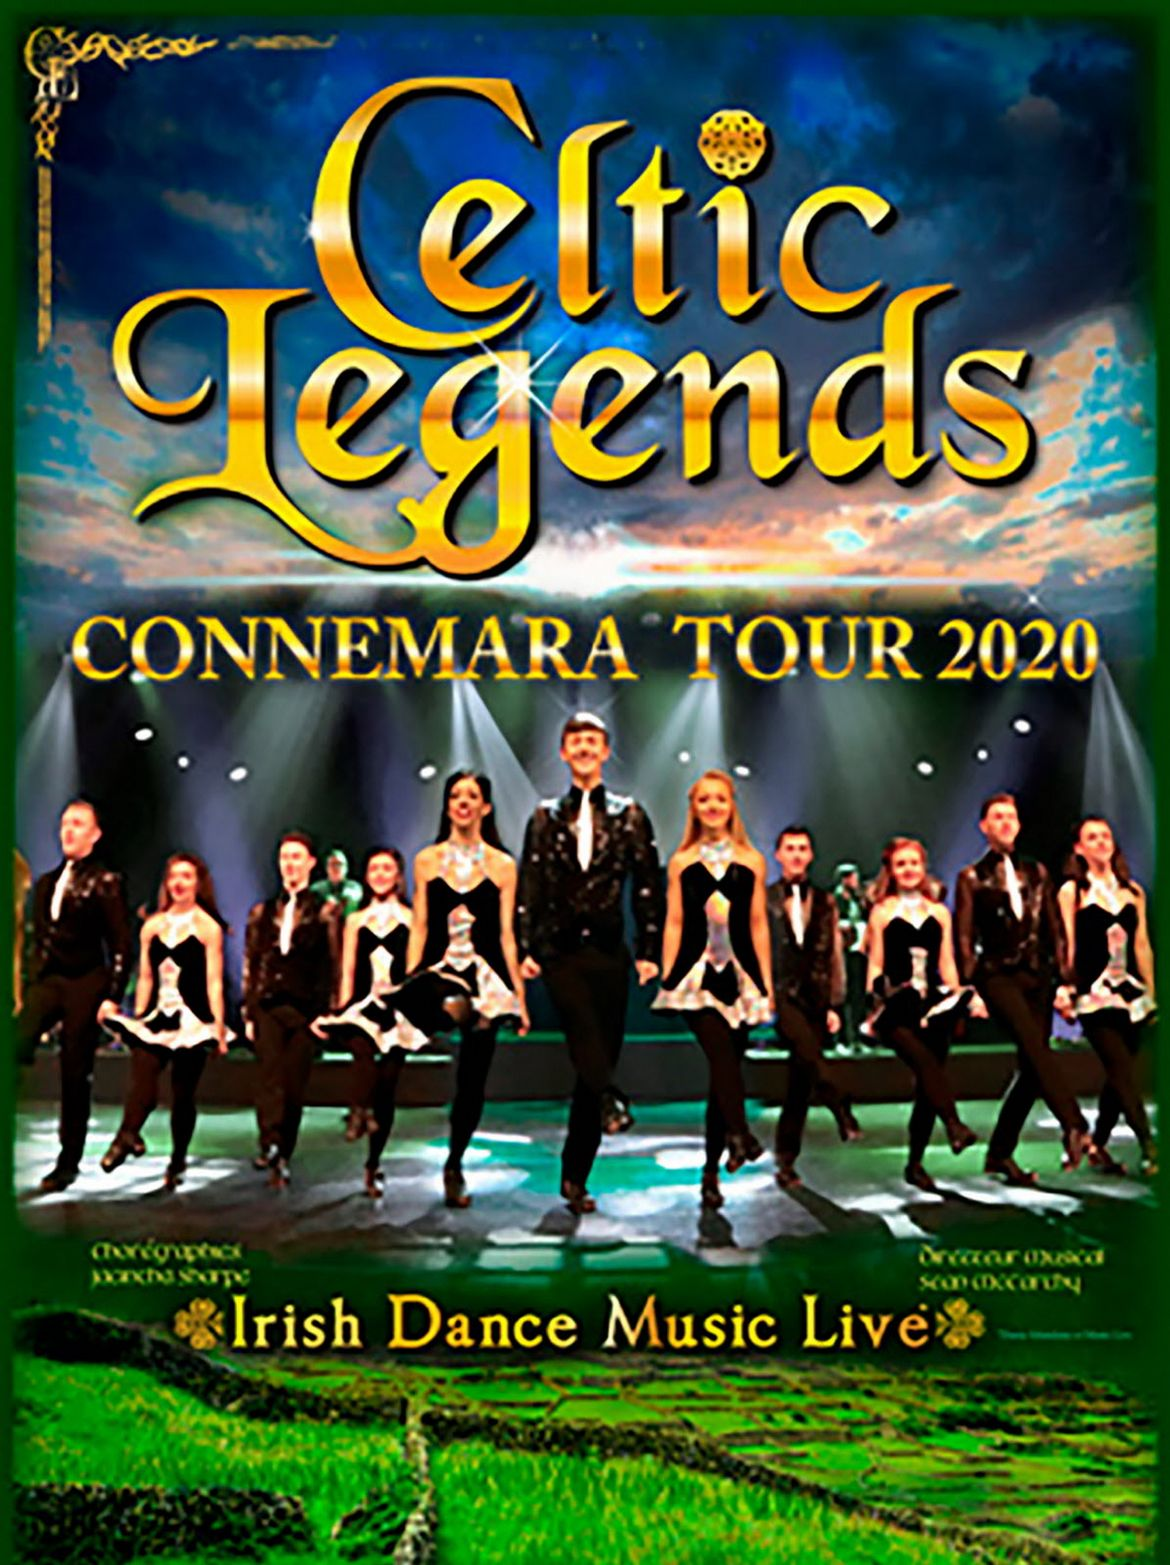 celtic-legends-connemara-tour-2020-thionville-2